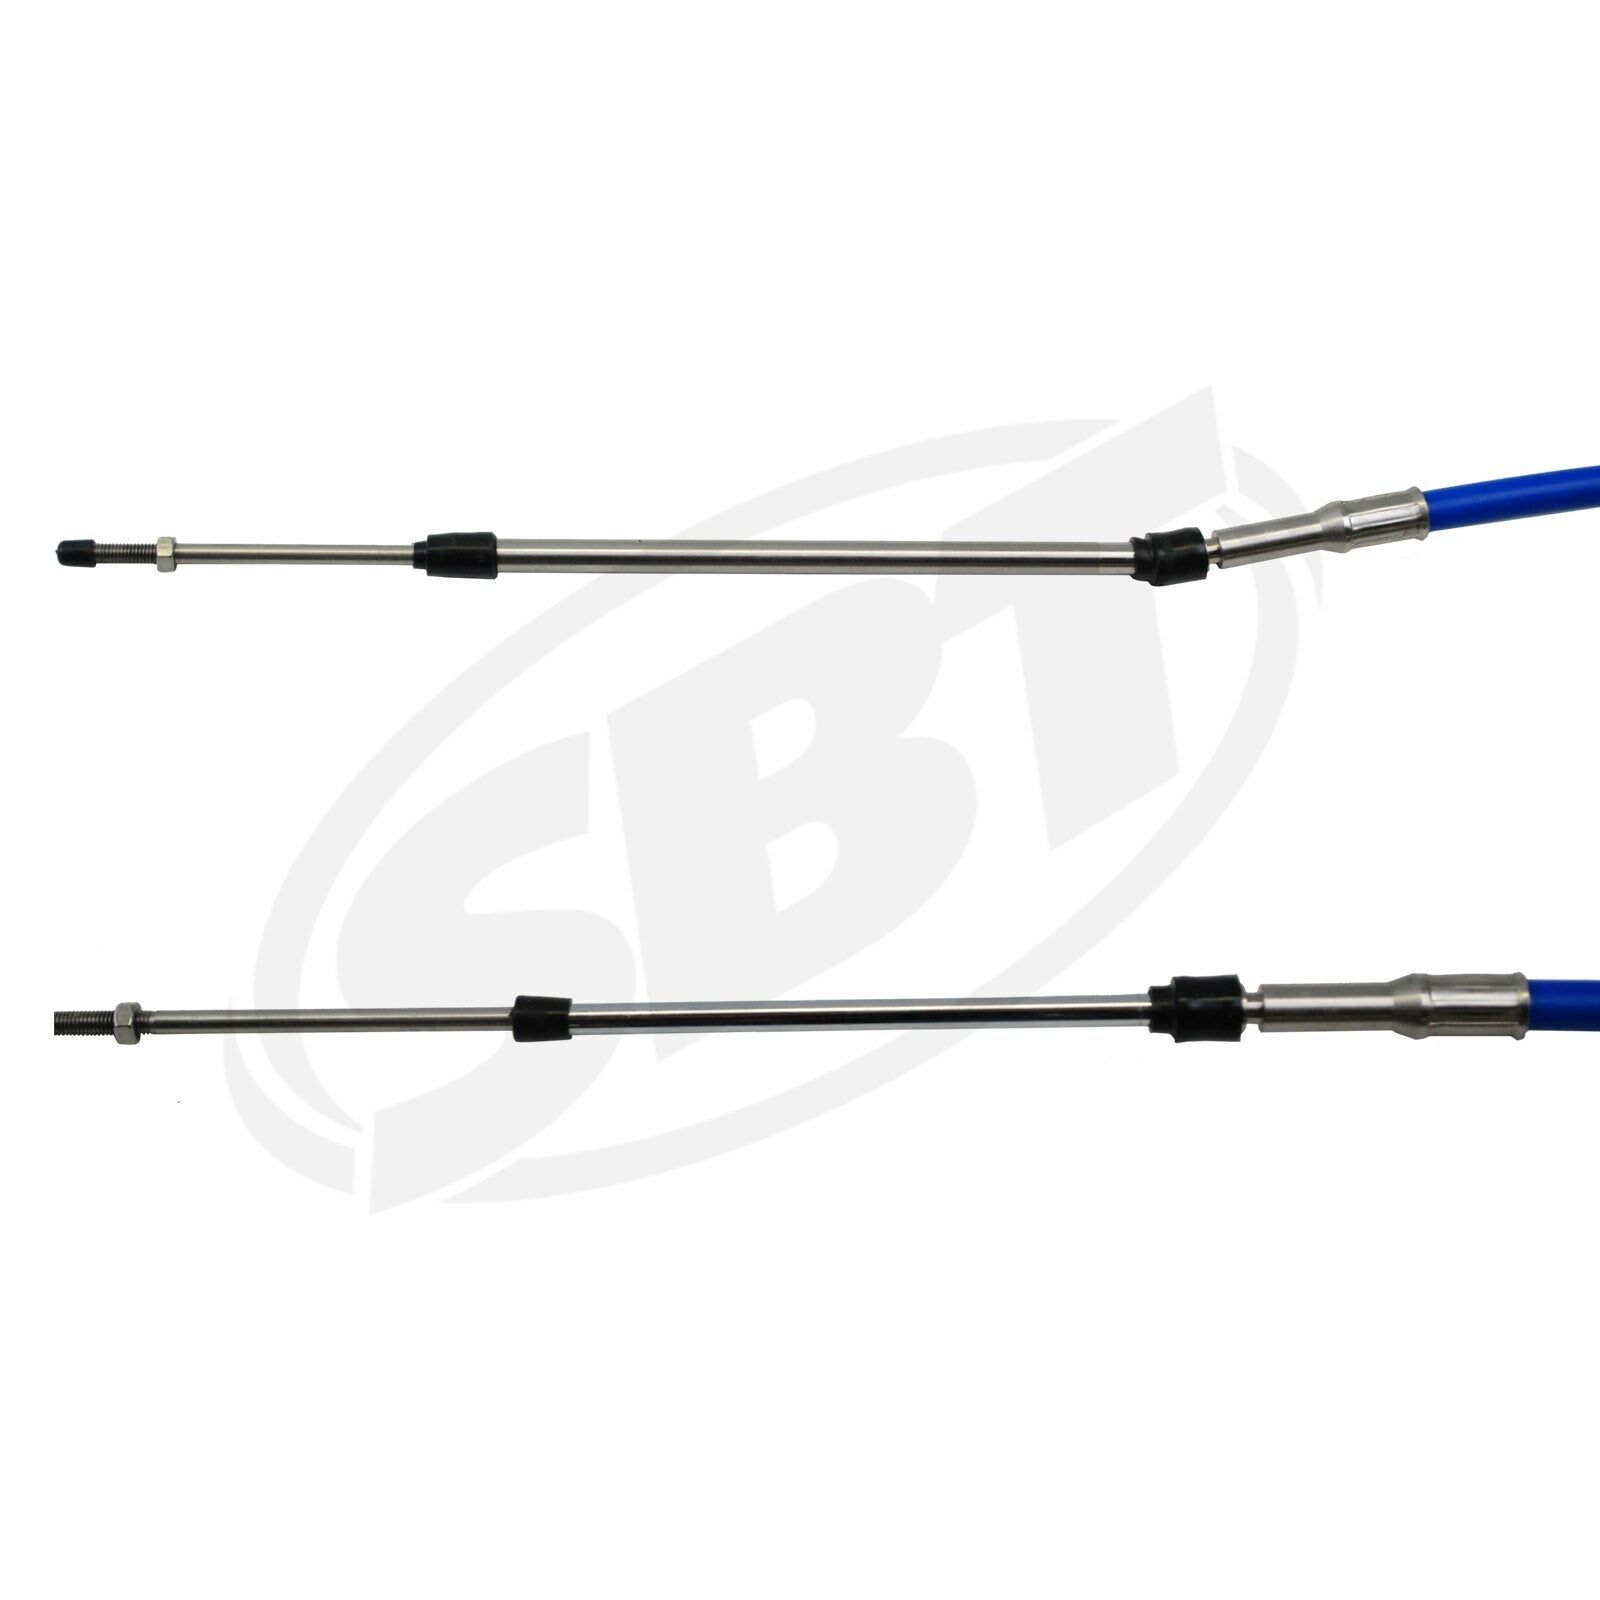 Yamaha Wave Raider Deluxe Steering Cable Jet Ski